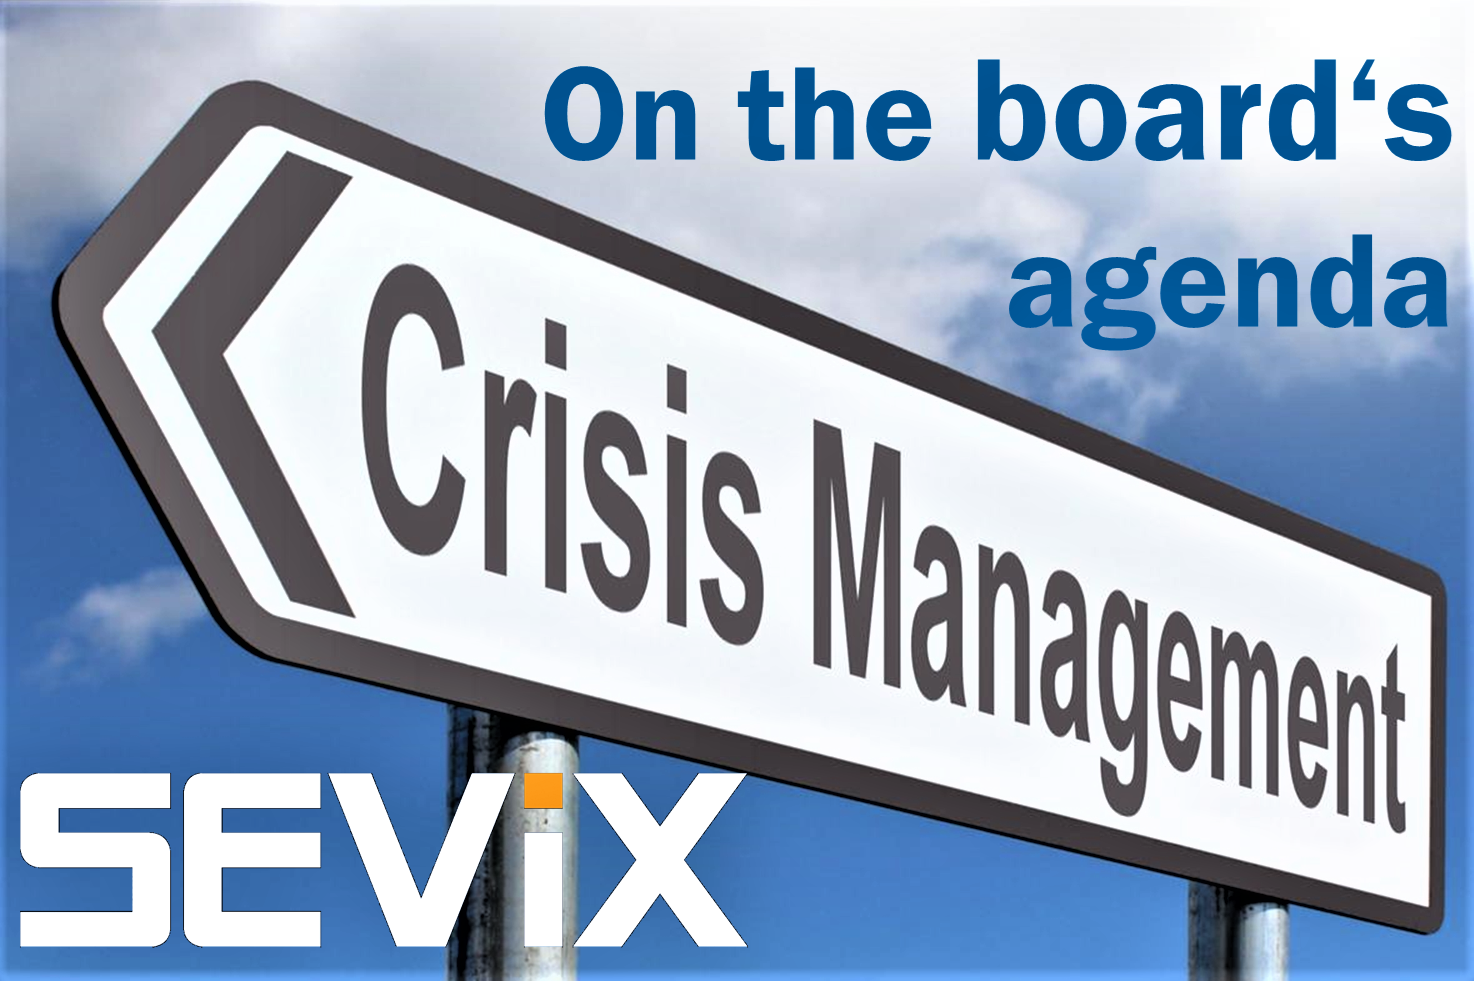 On the boards agenda _ crisis management (3)